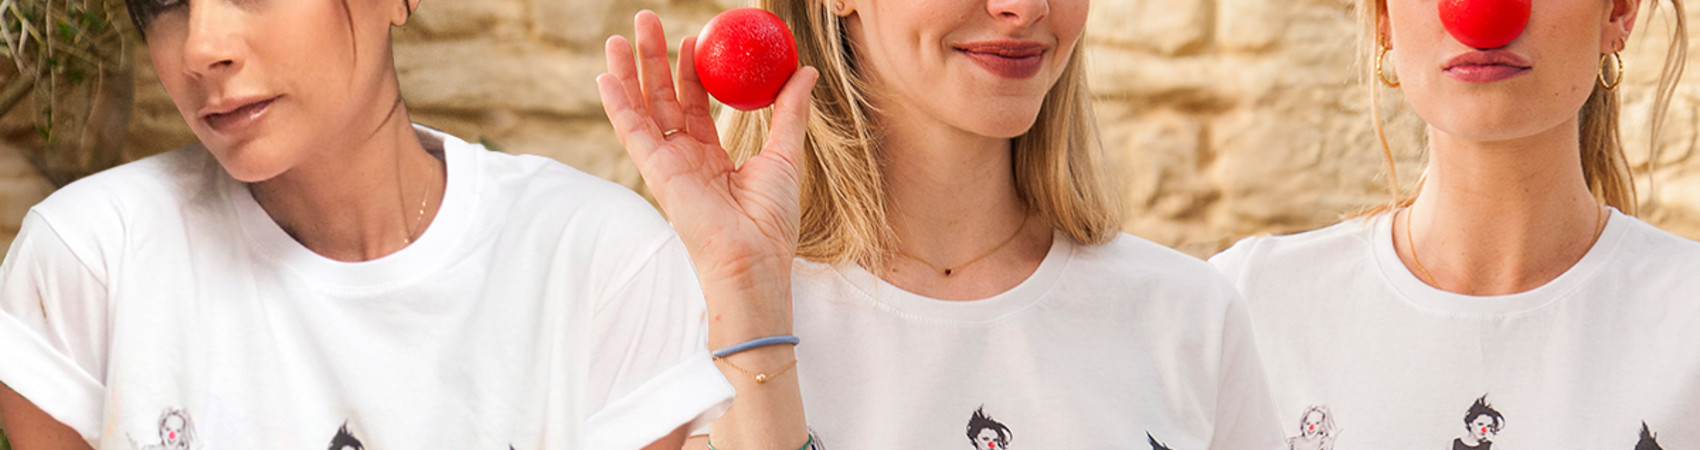 Victoria Beckham, Amanda Seyfried, and Lily James all support Red Nose Day